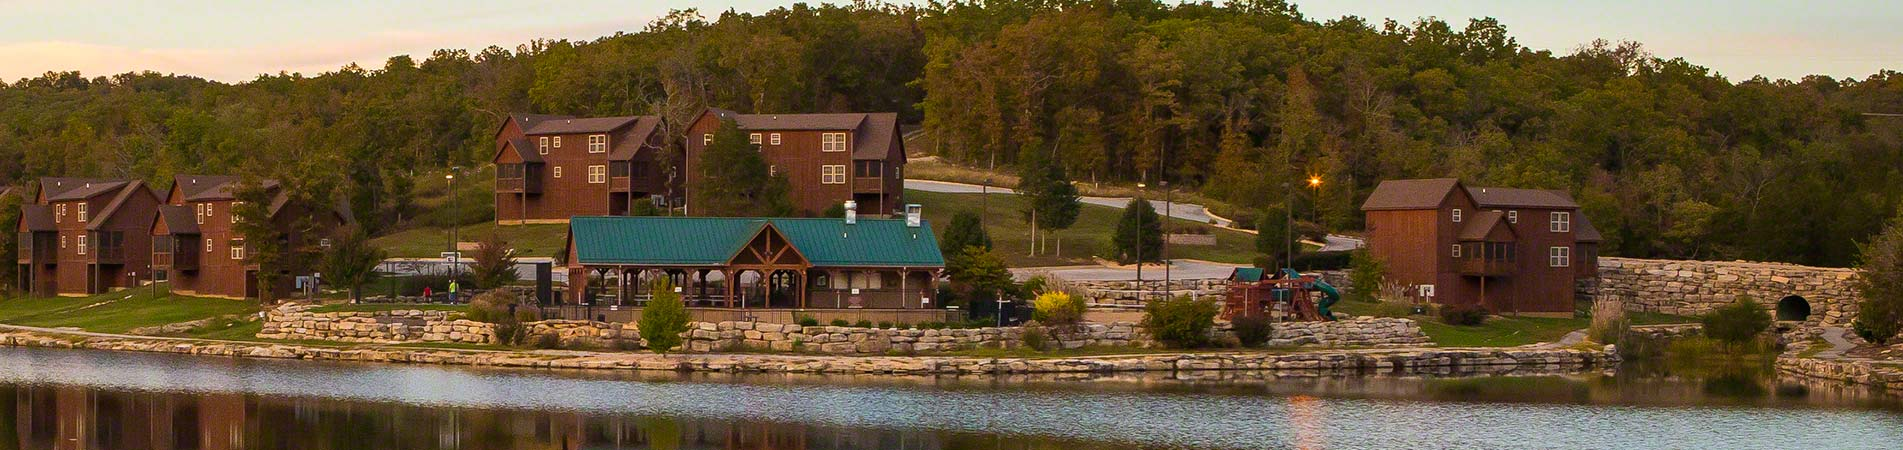 A small lakeside community filled with Branson vacation rentals.